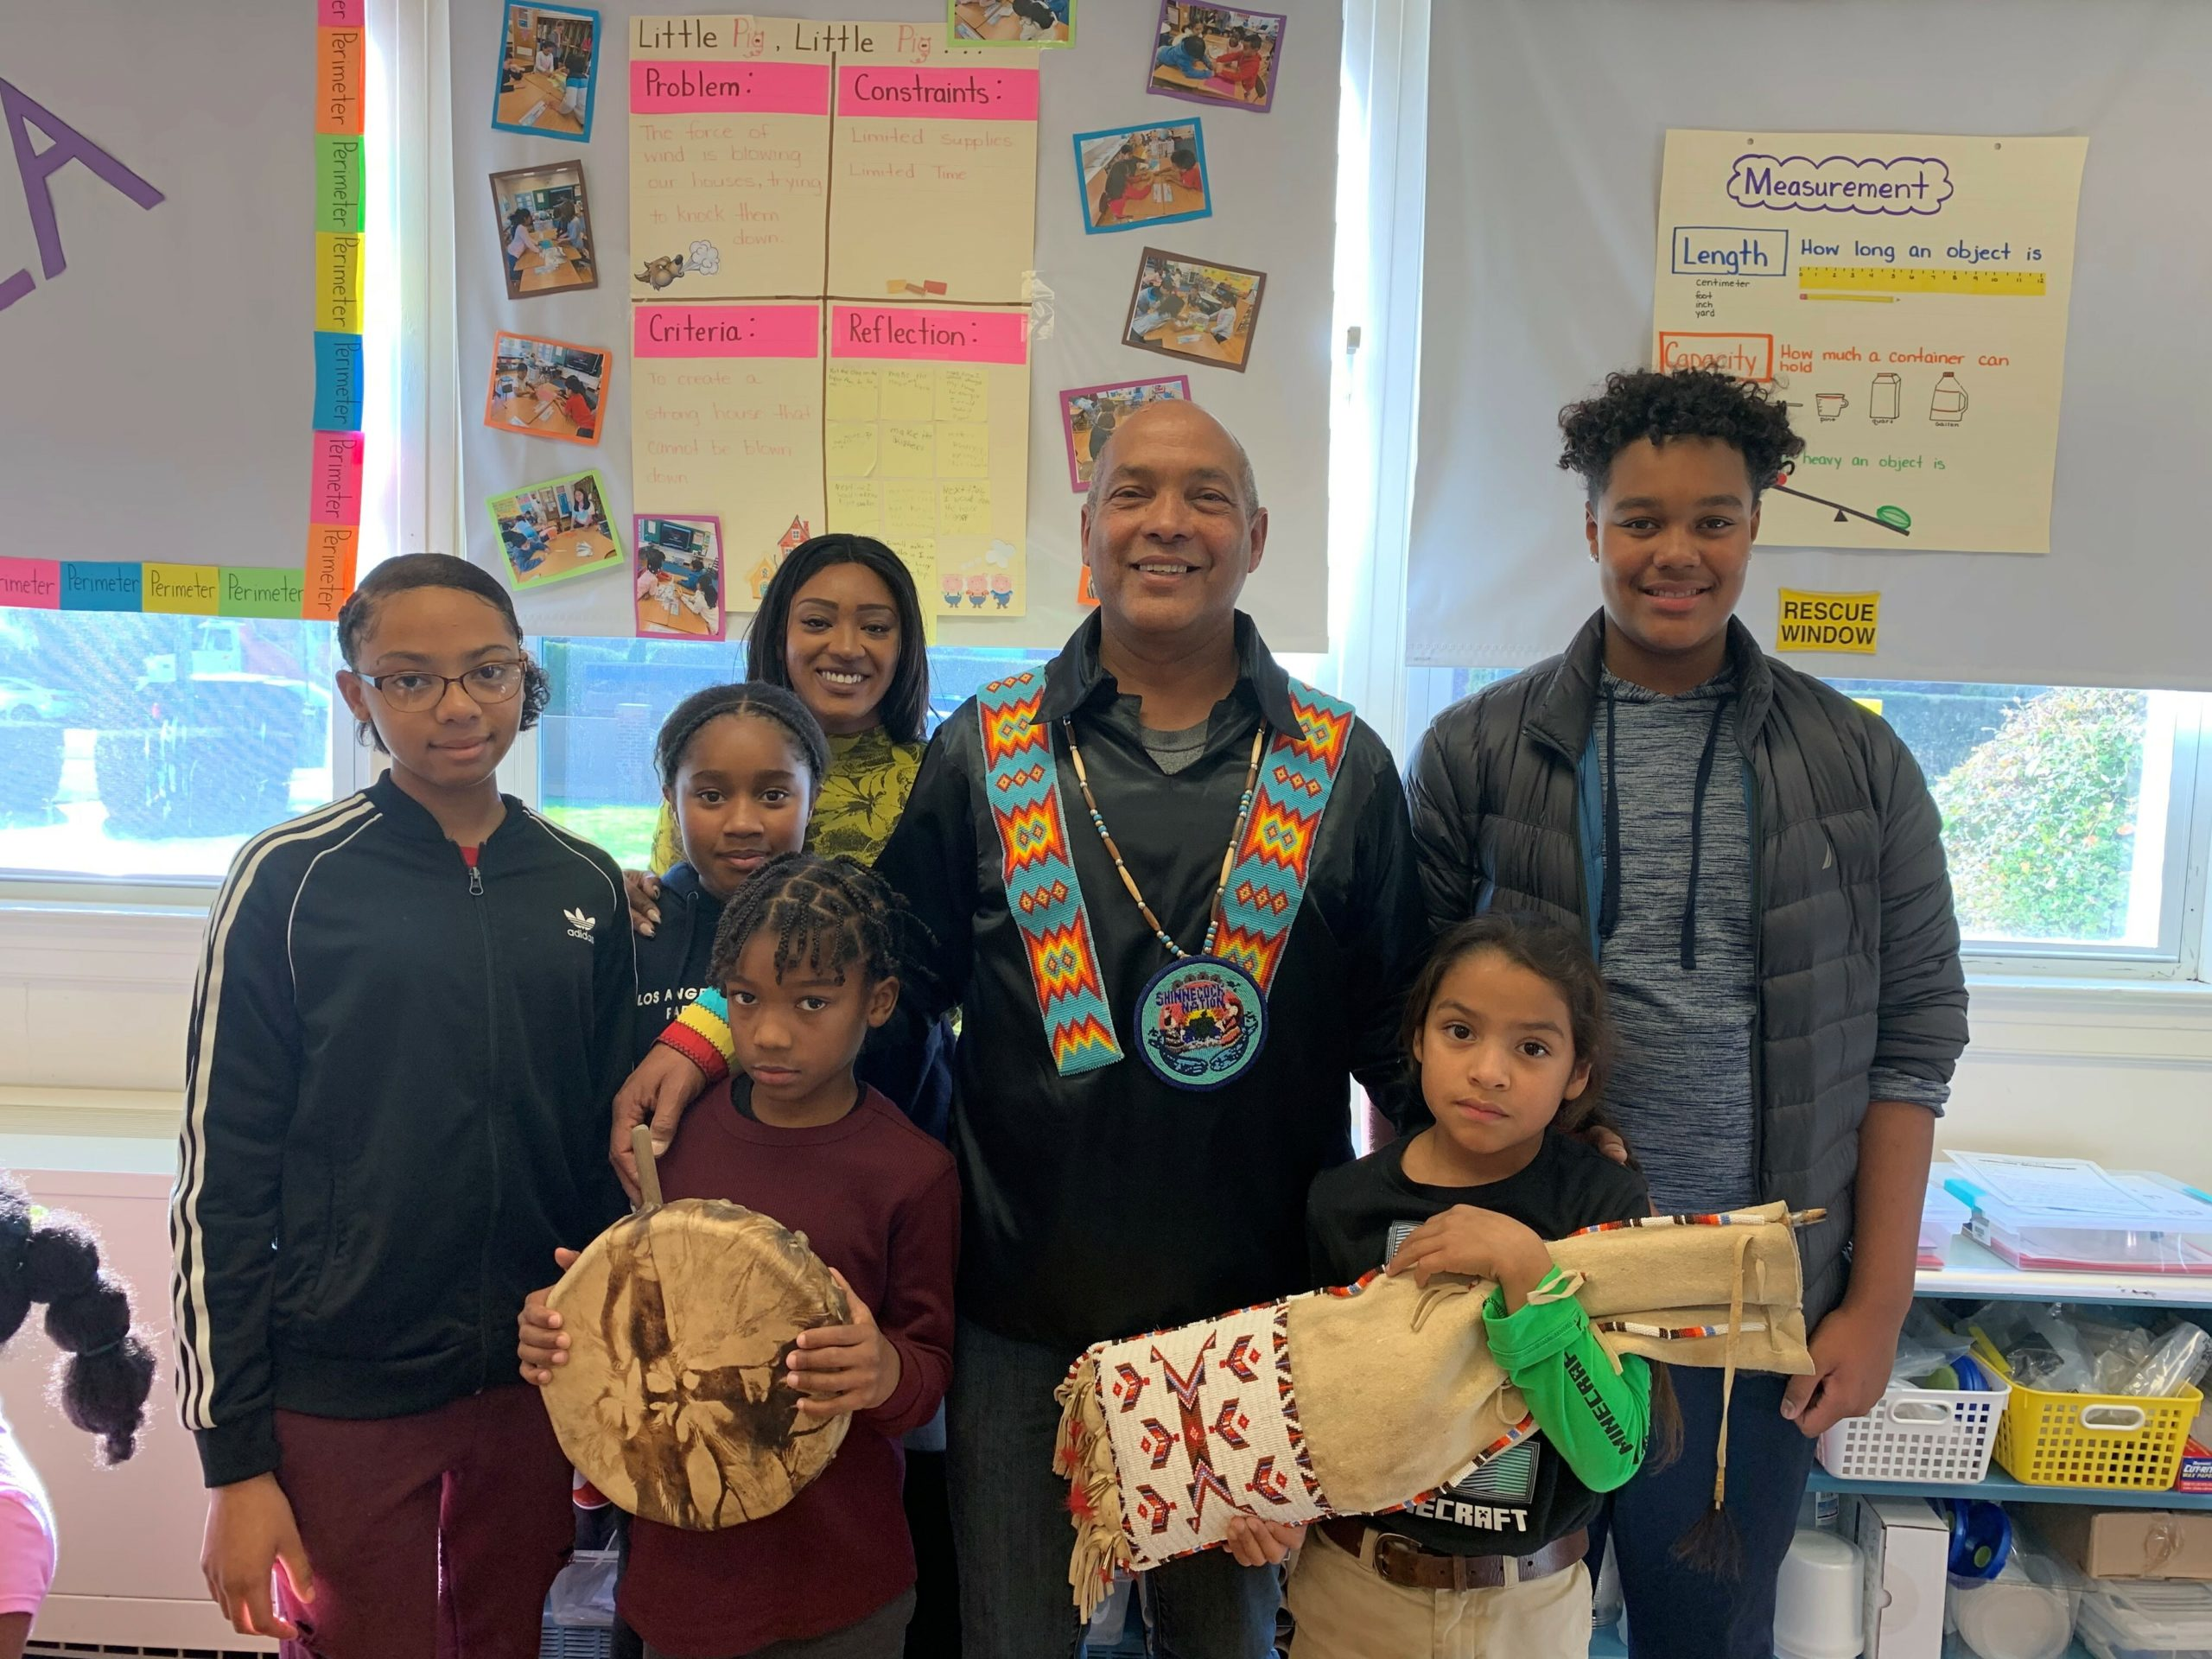 On Thursday, November 21, members of the Shinnecock Nation offered a presentation to third-graders in honor of Native American Heritage month.The presentation included the sharing of Native American folktales, beliefs, traditions, and food. Students sampled homemade fry bread and watched the performance of a Native American song.